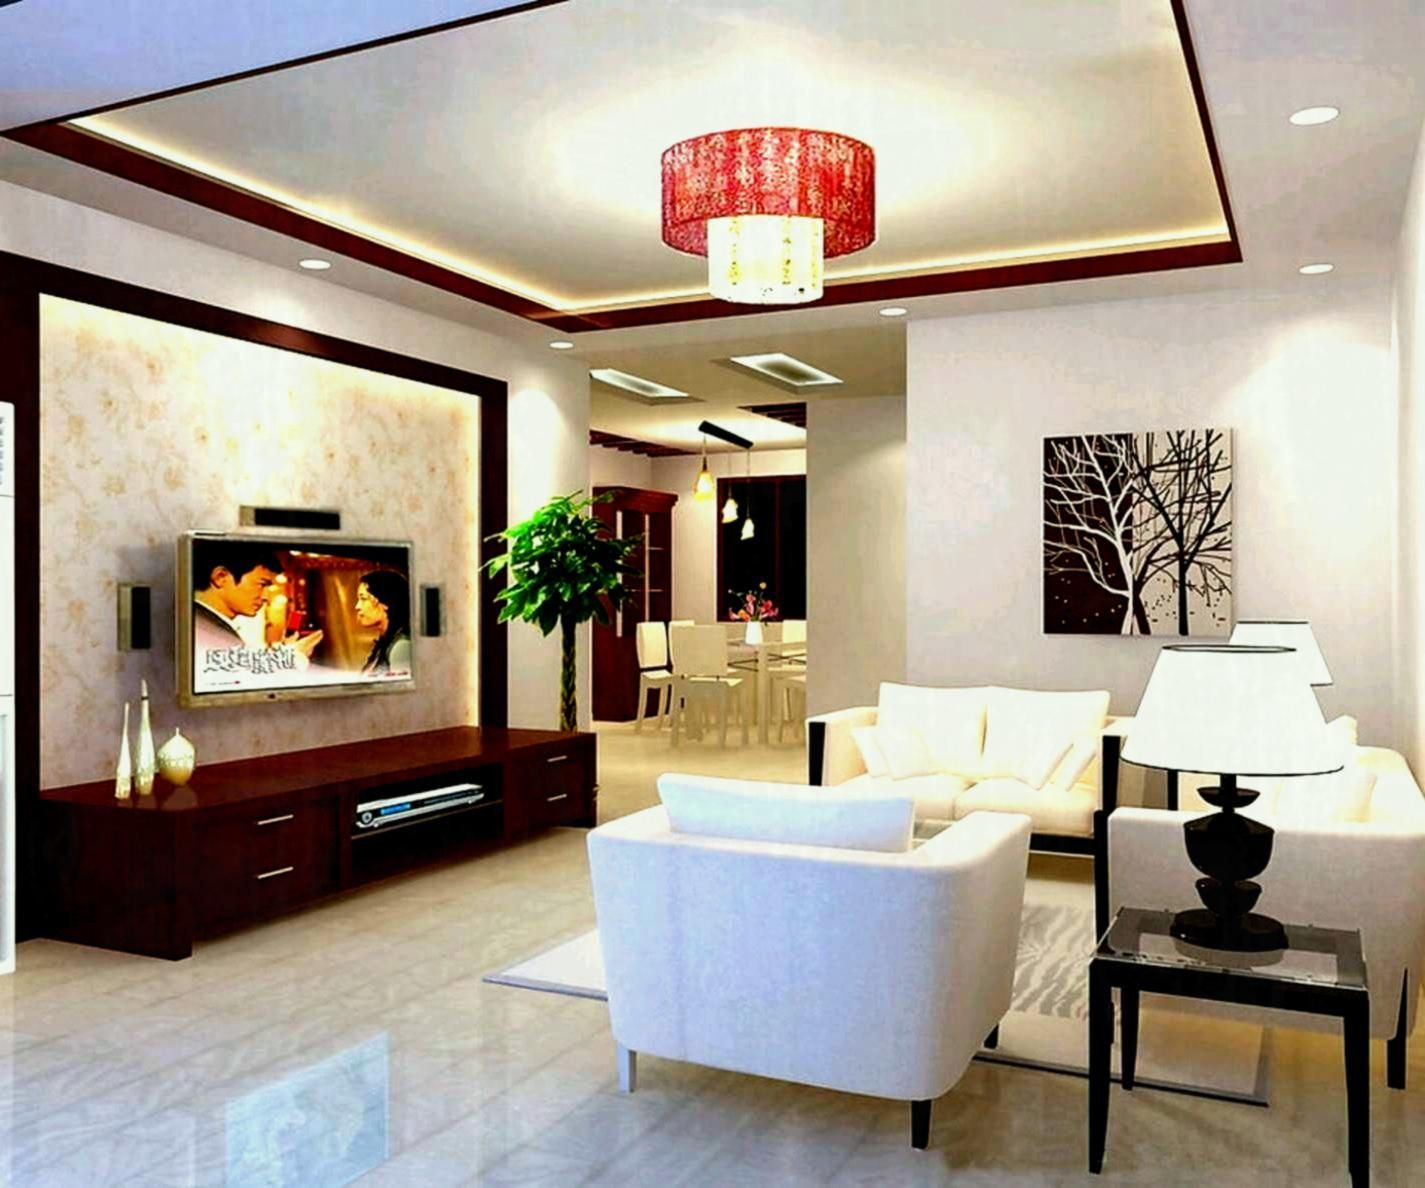 Pretty Home Interior Design For Middle Class Family With Pink Chandelier Homedecormoderninteriordesign